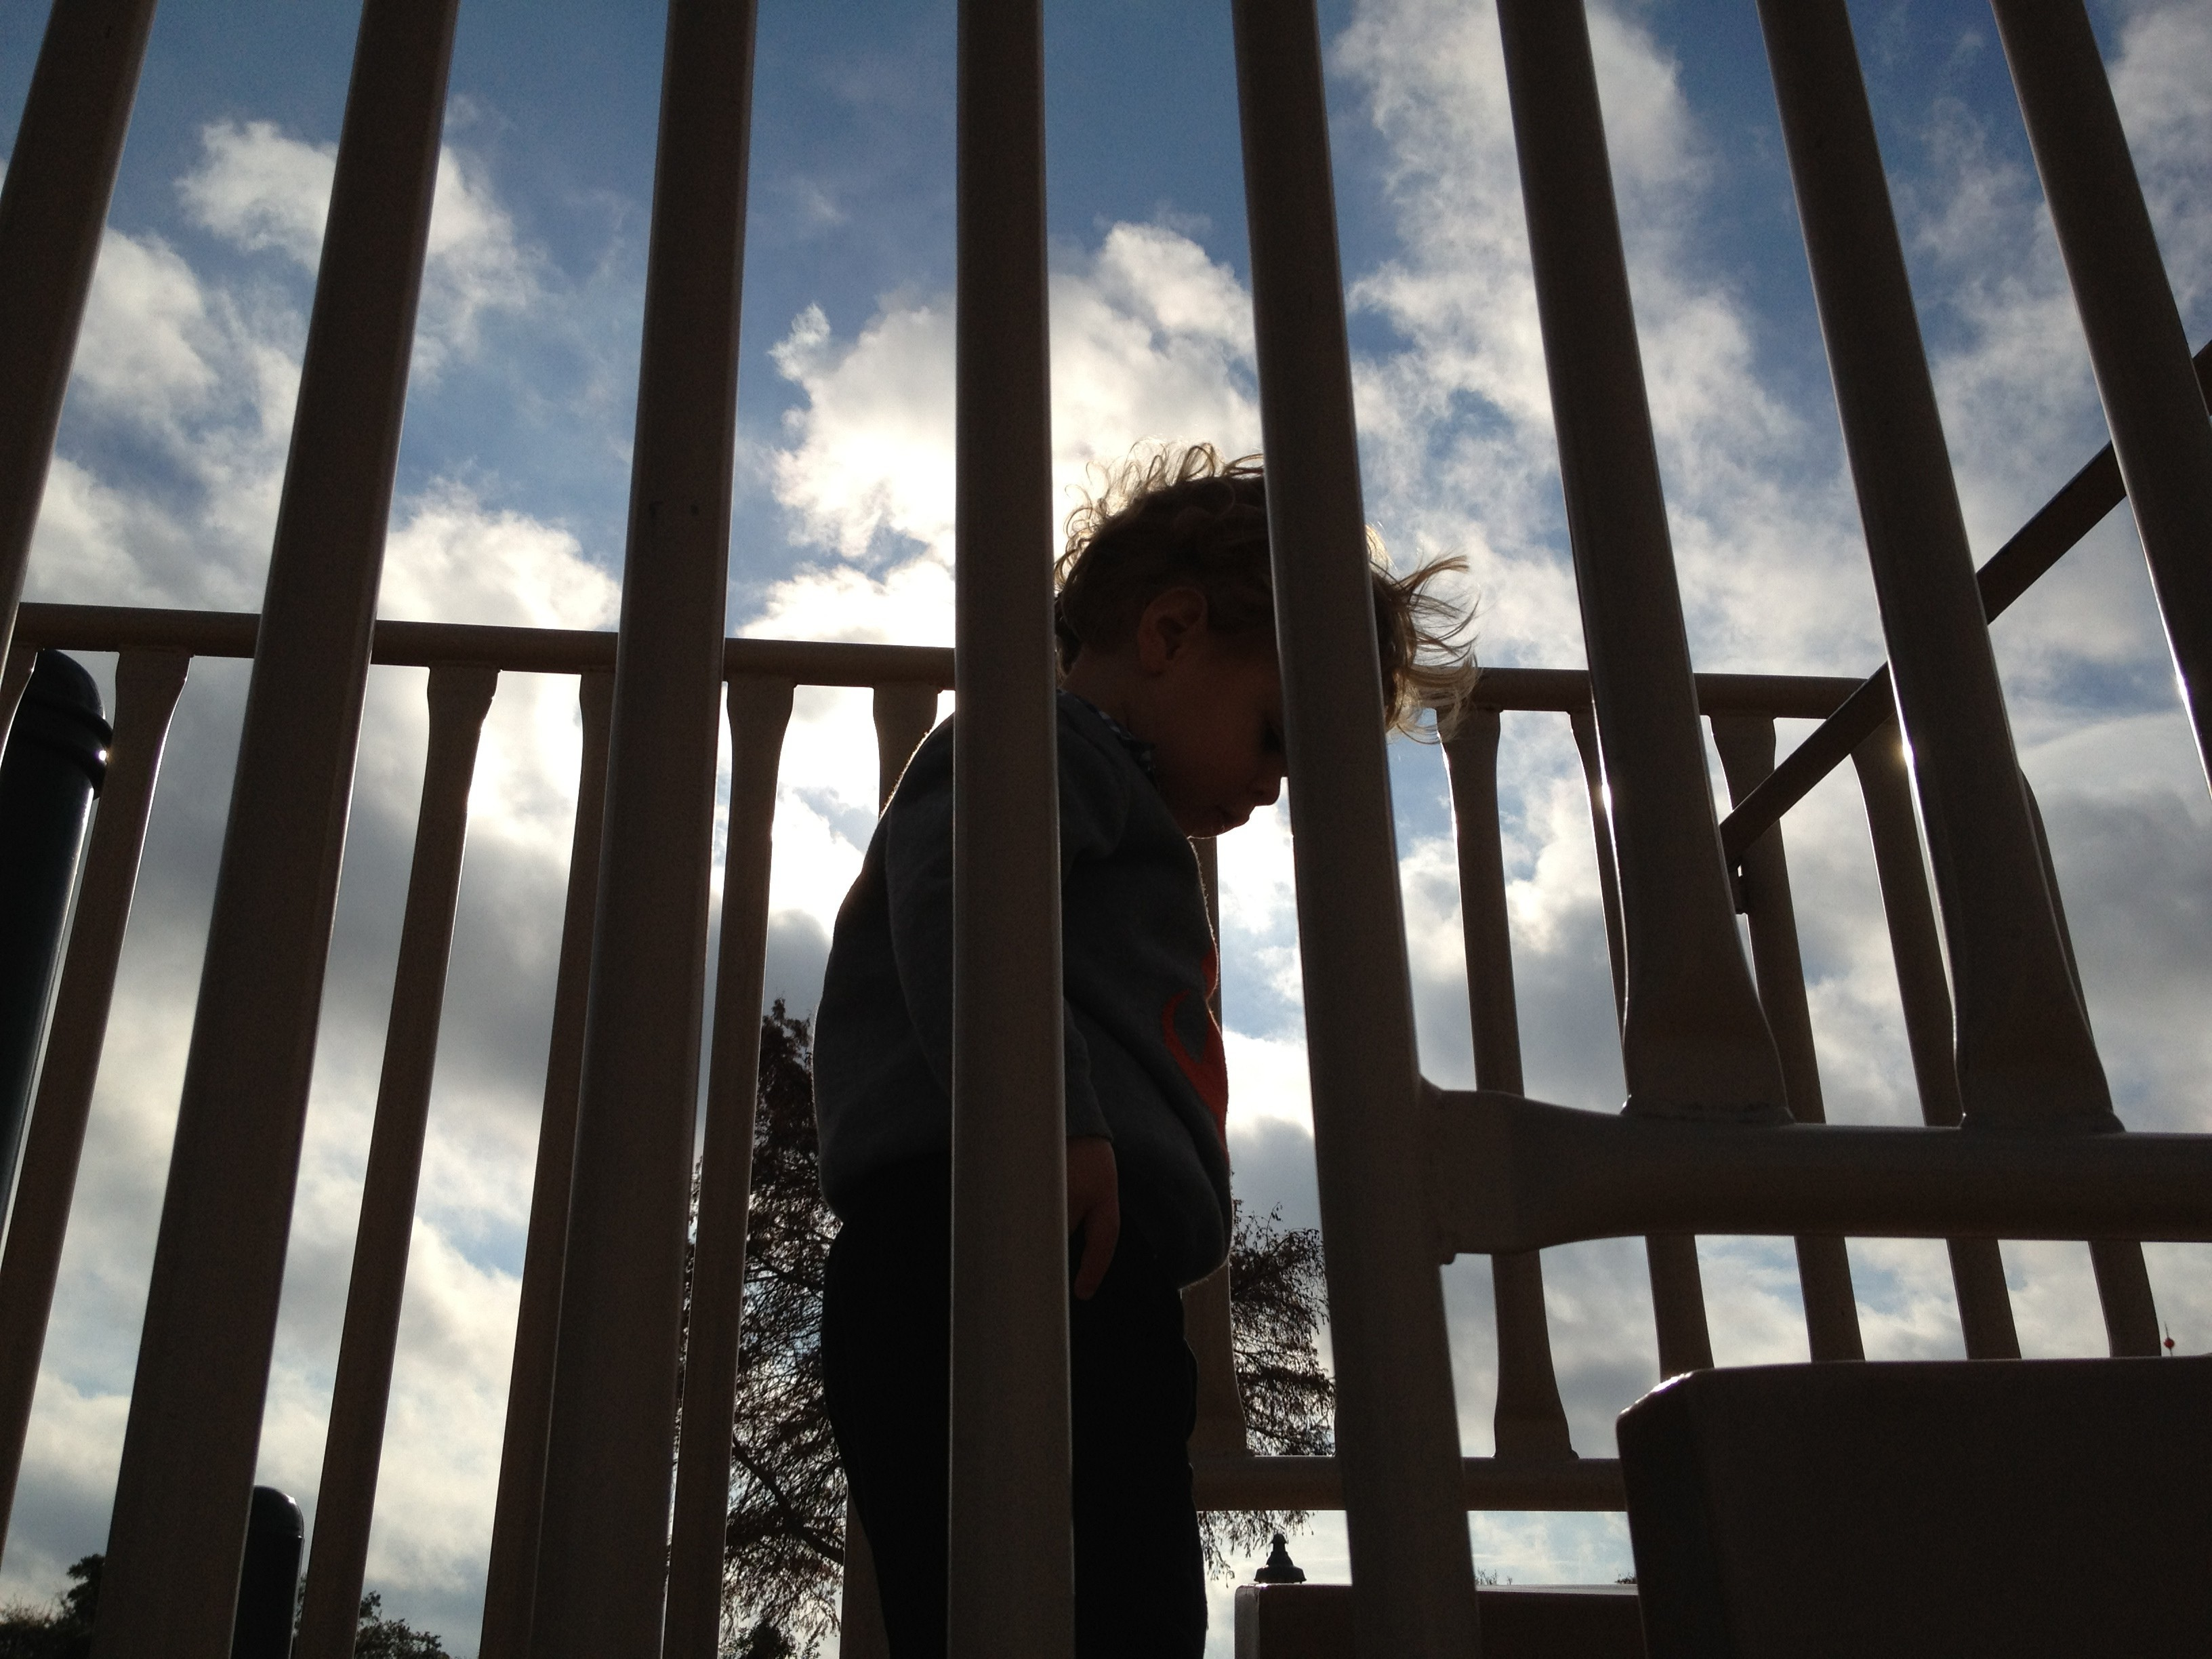 iphoneography at the playground